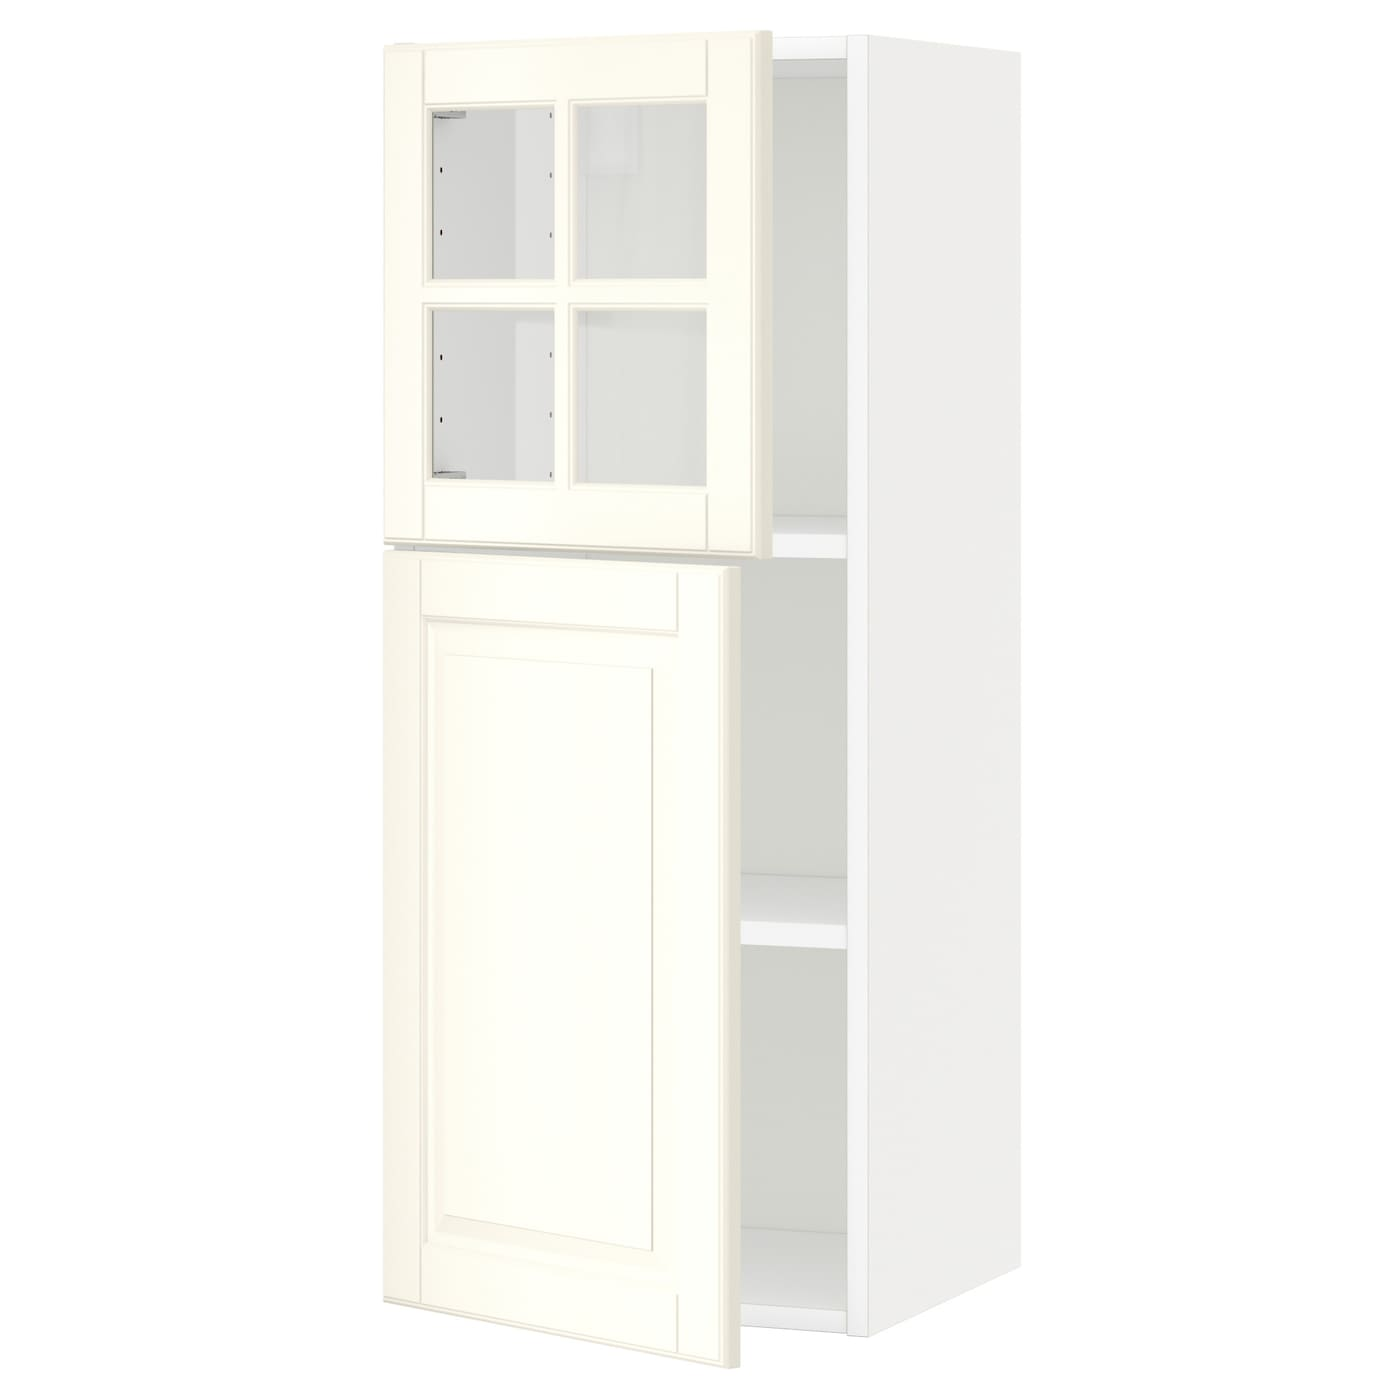 IKEA METOD Wall Cab W Shelves/door/glass Door Sturdy Frame Construction, 18 Part 33